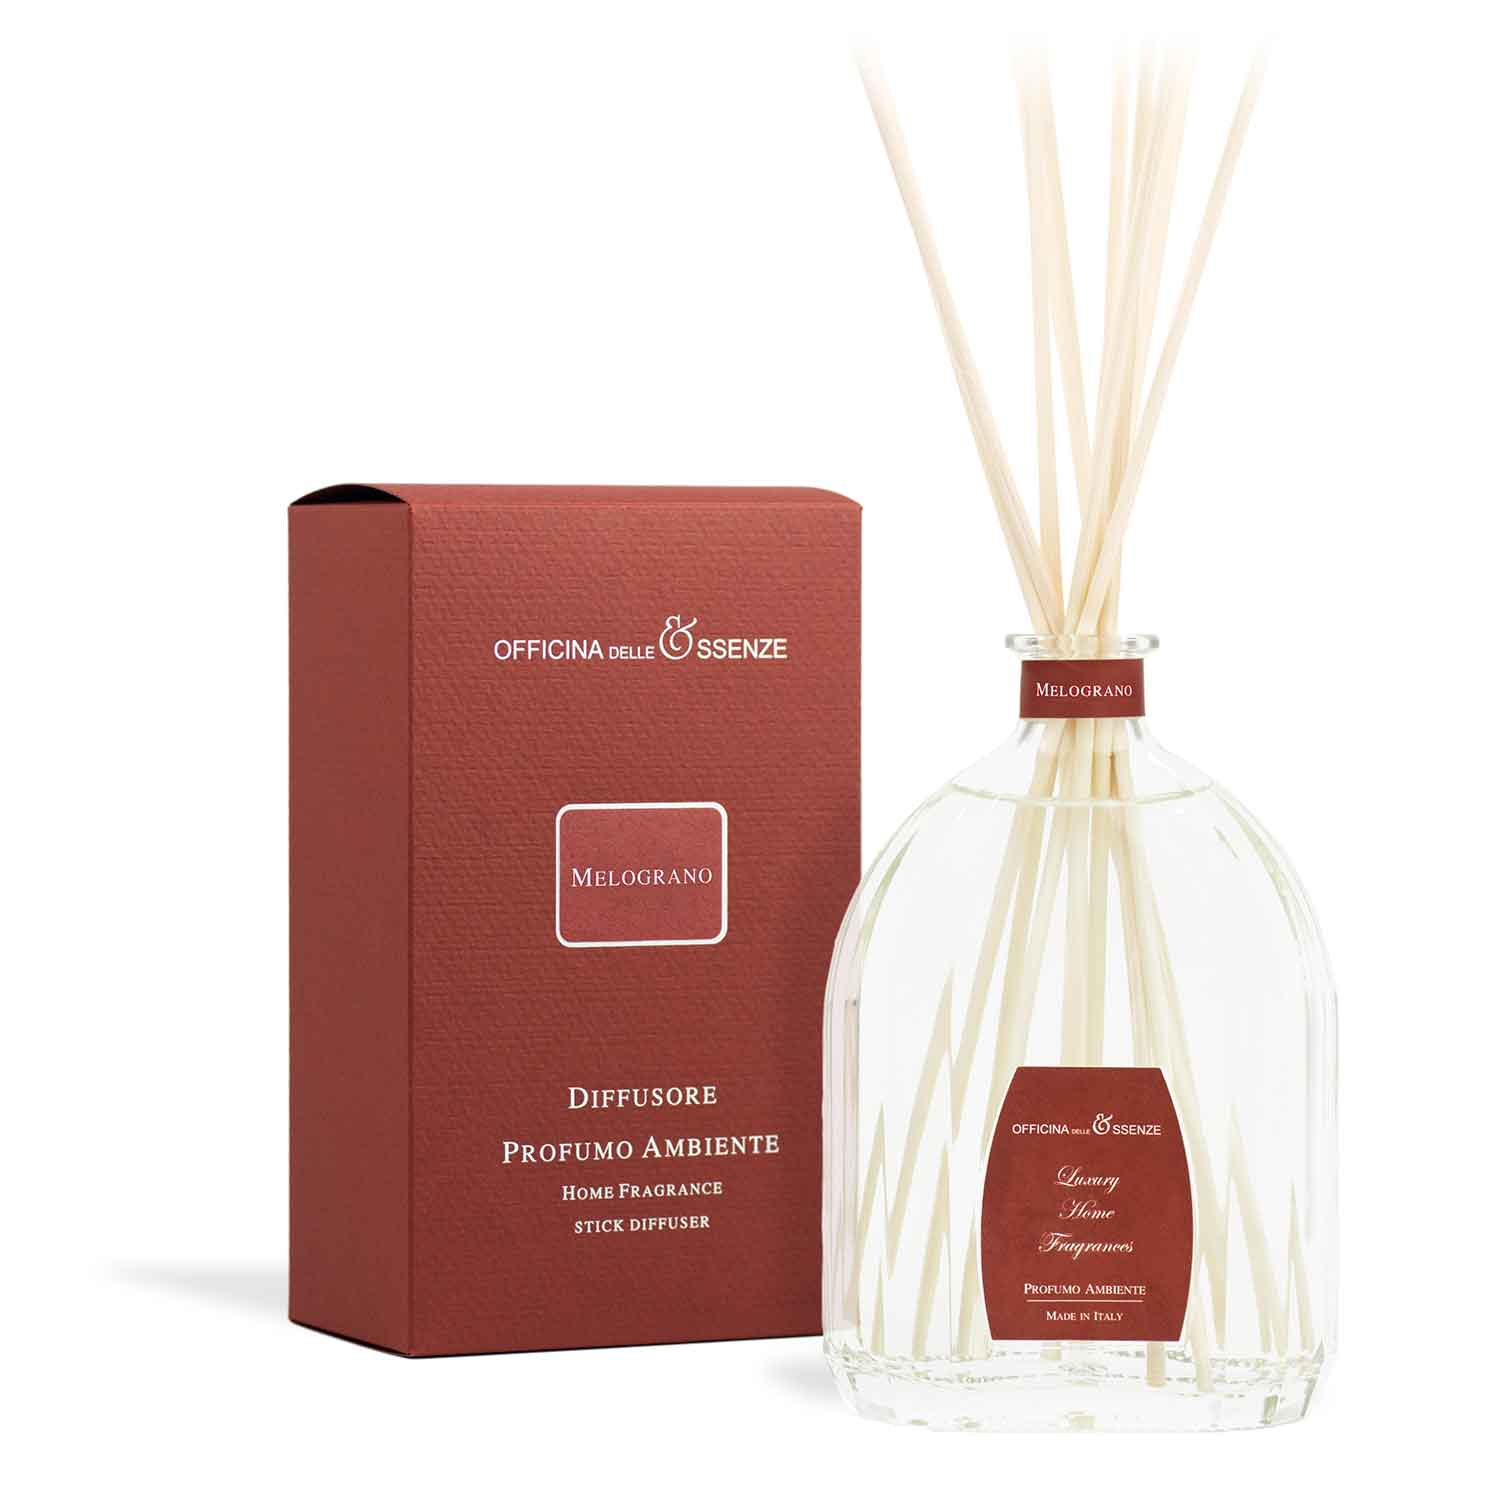 Melograno - Home reed diffuser